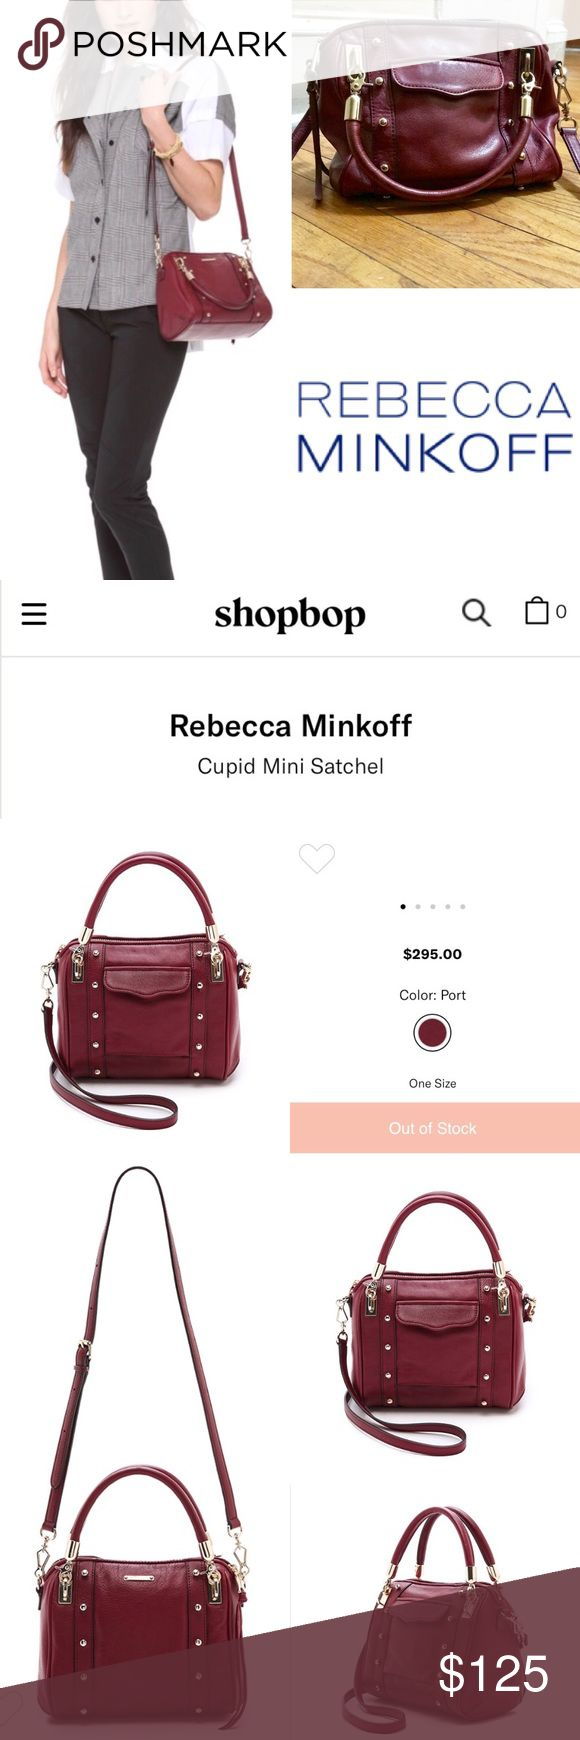 Rebecca Minkoff Cupid Mini in Port Wine Red EUC Rebecca Minkoff Cupid Mini bag in 'port' with gold hardware, fits a surprising amount for a smaller bag. Includes the satchel style handles and the adjustable long strap, which are both in great condition, along with the corners and the general condition of the leather. There are a few faint small stains on the bottom as shown in photo, the interior shows a little wear, but no other flaws found. Please see photo for description.  (no dust bag)…